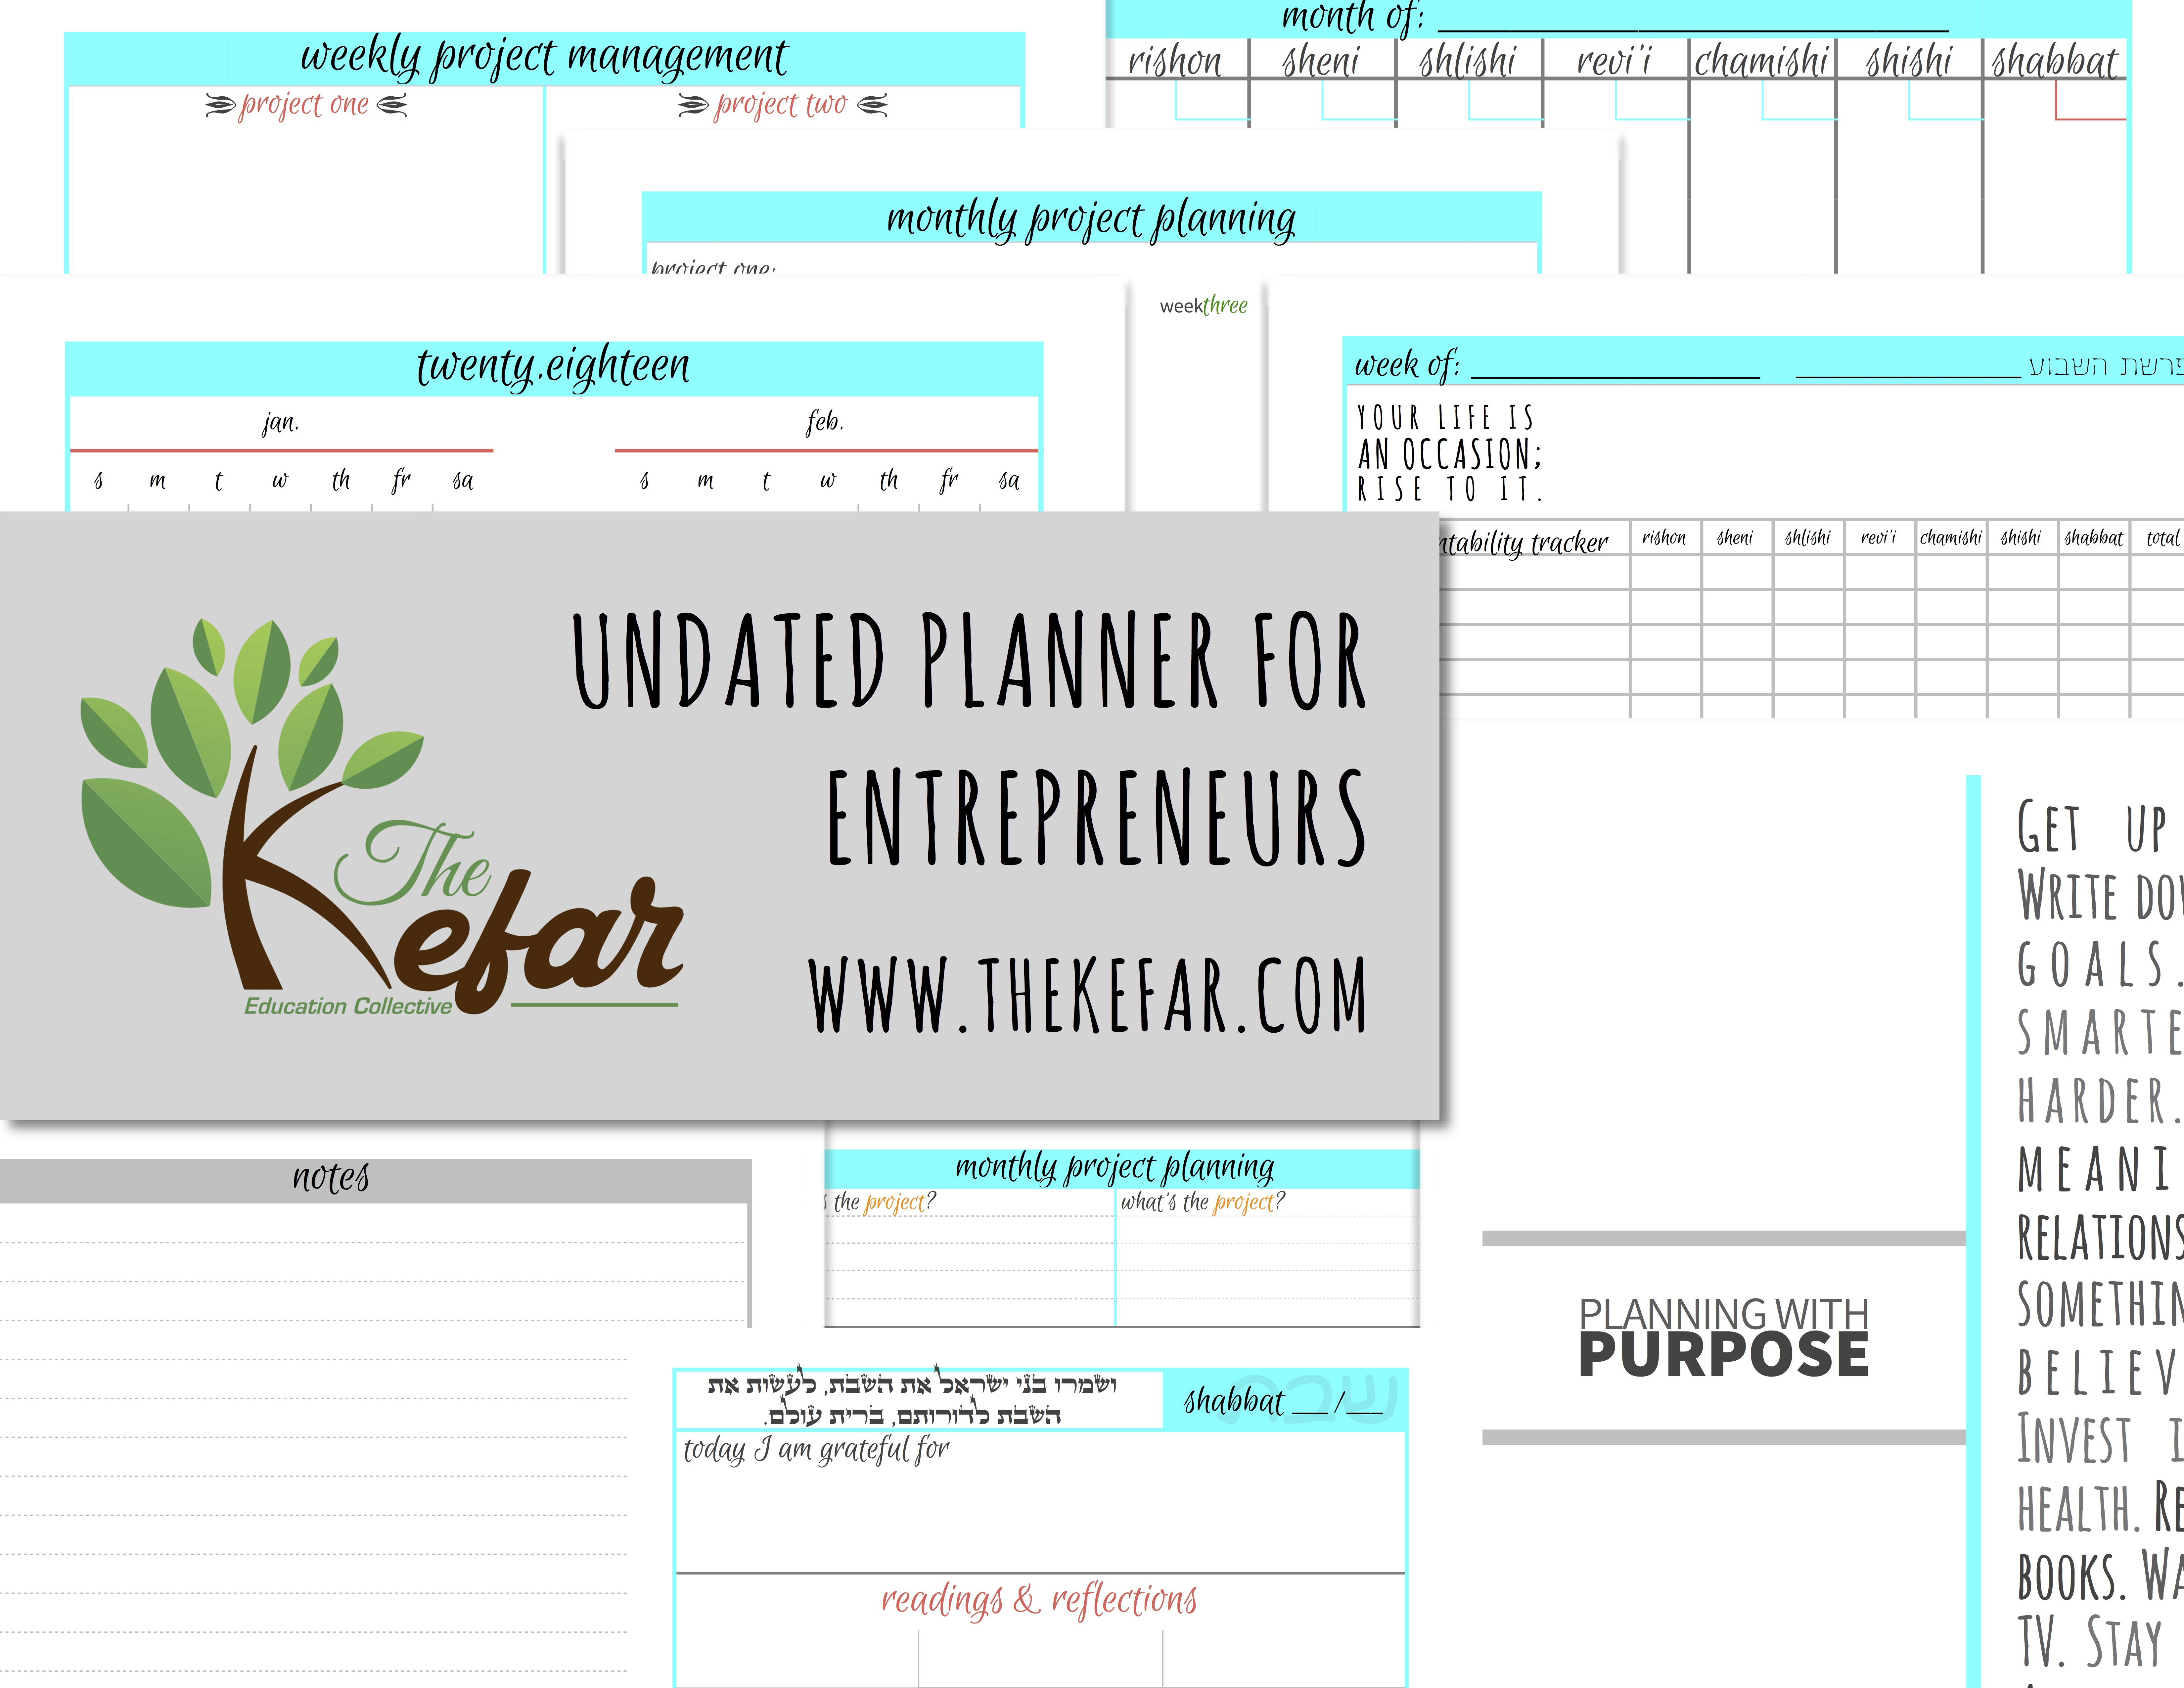 Planning With Purpose - Undated Planner for Entrepreneurs